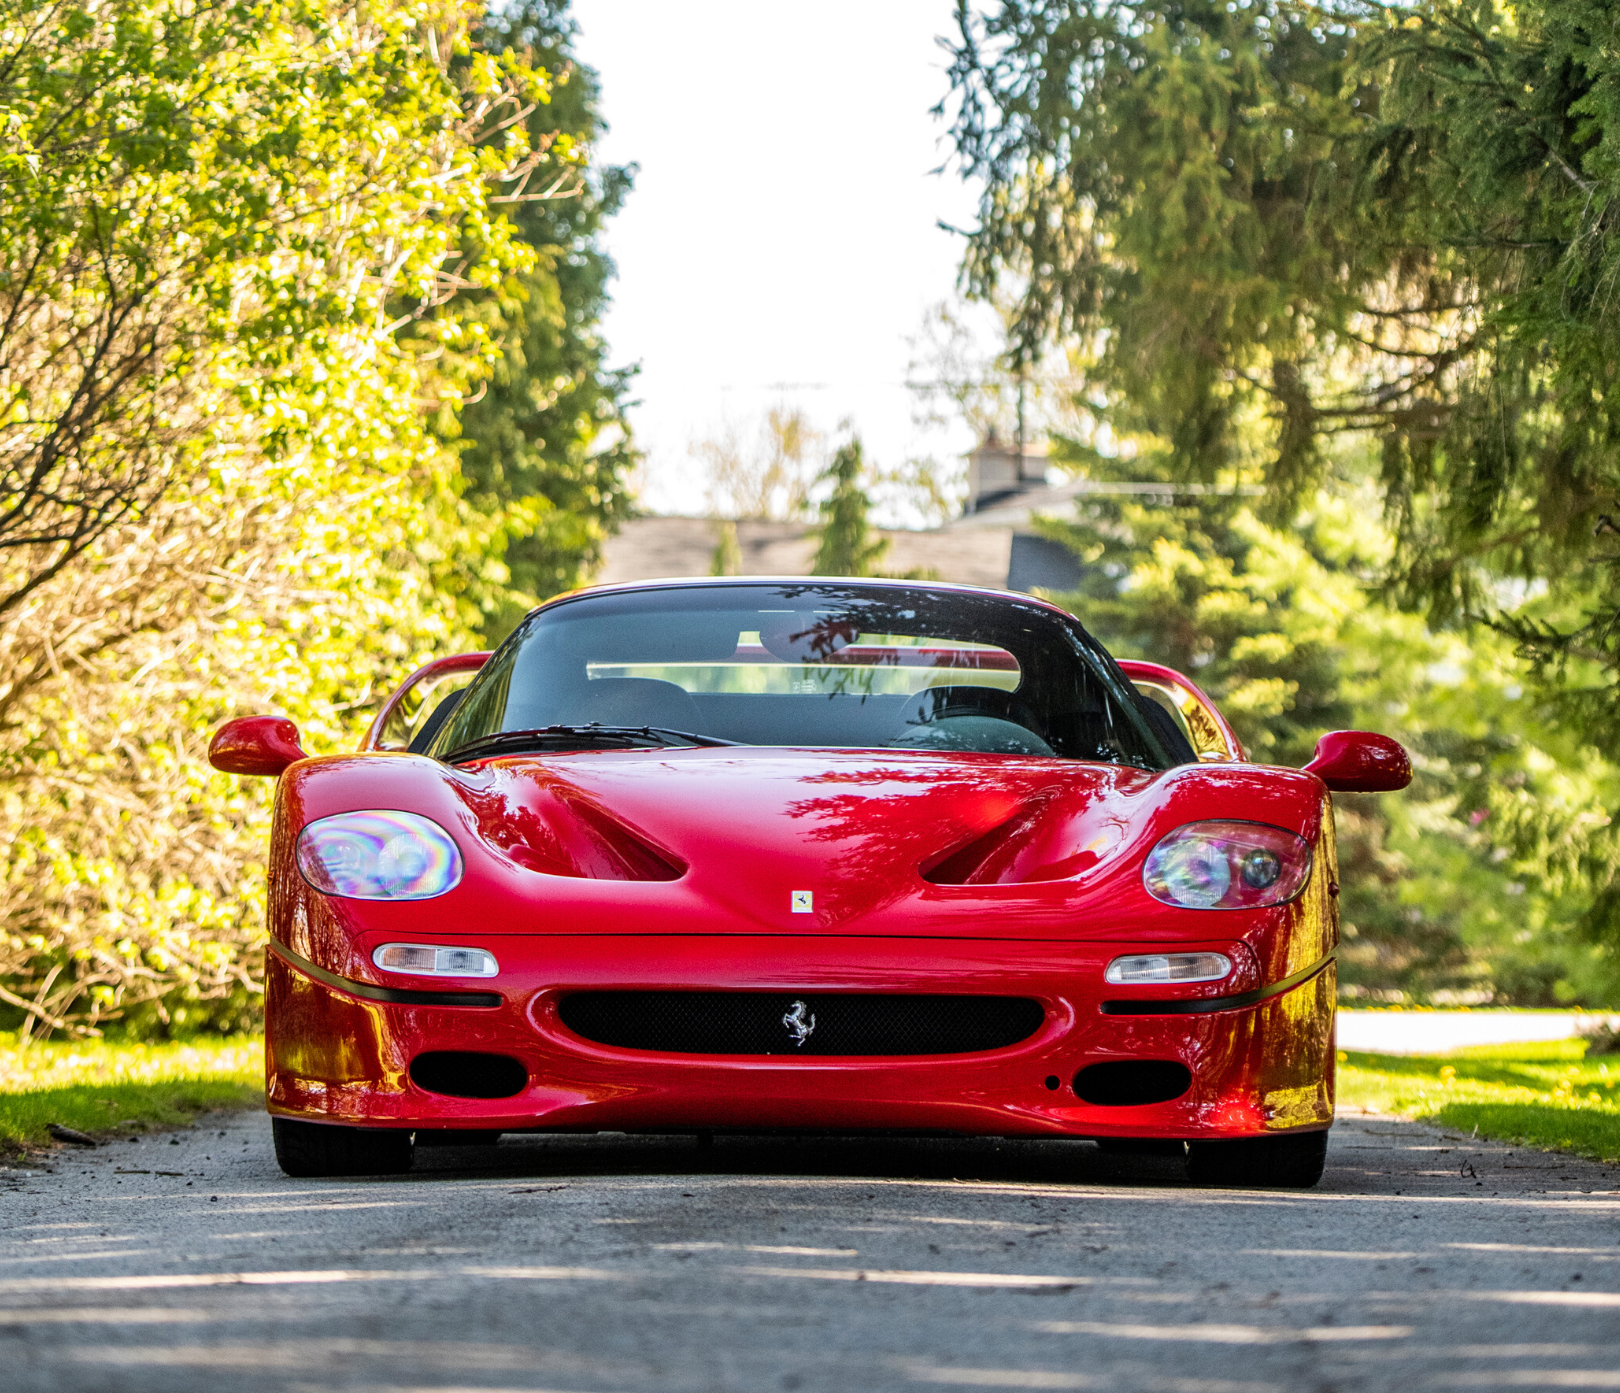 Ferrari F50 view from the front hood on a trail